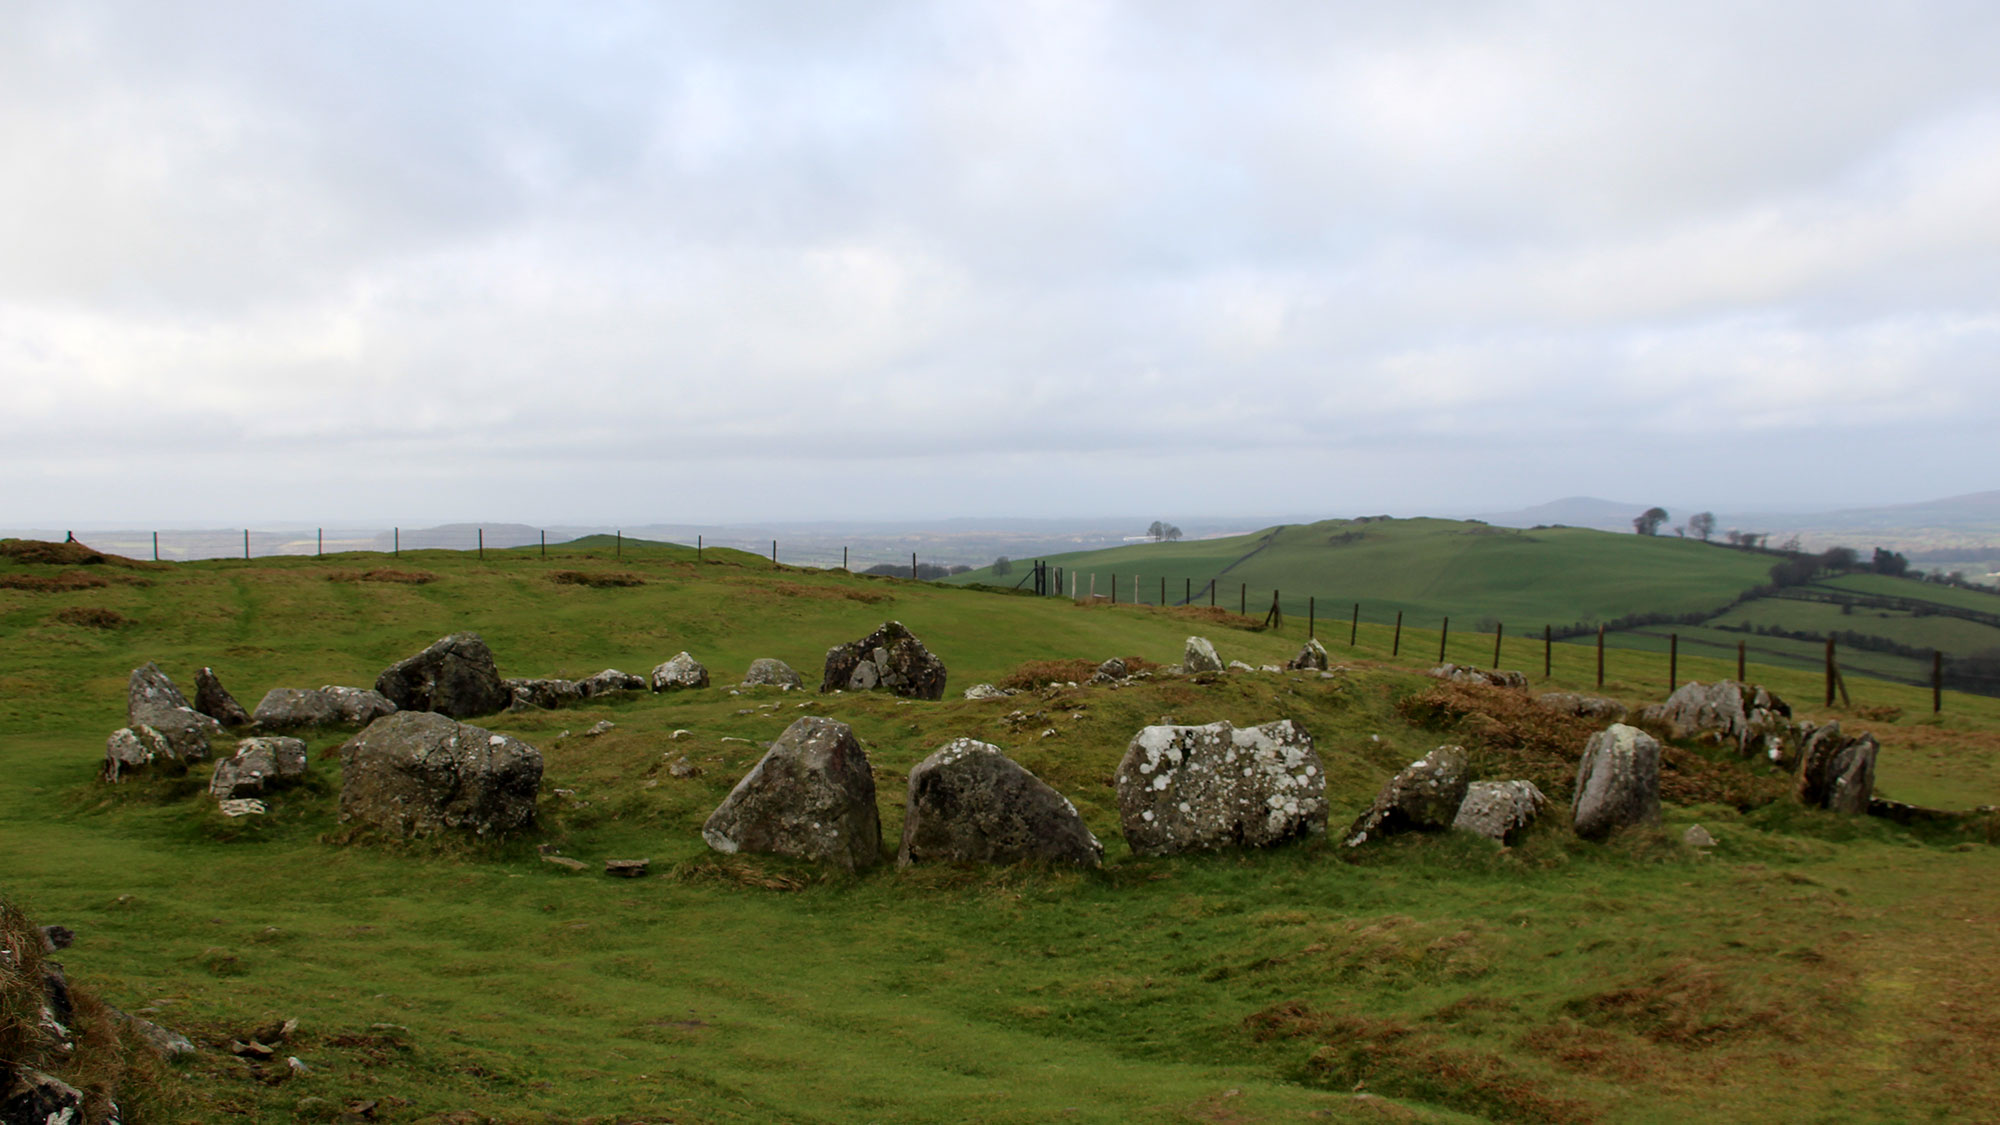 Sliabh na Cailleach, the Hill of the Witch, at Loughcrew in County Meath.